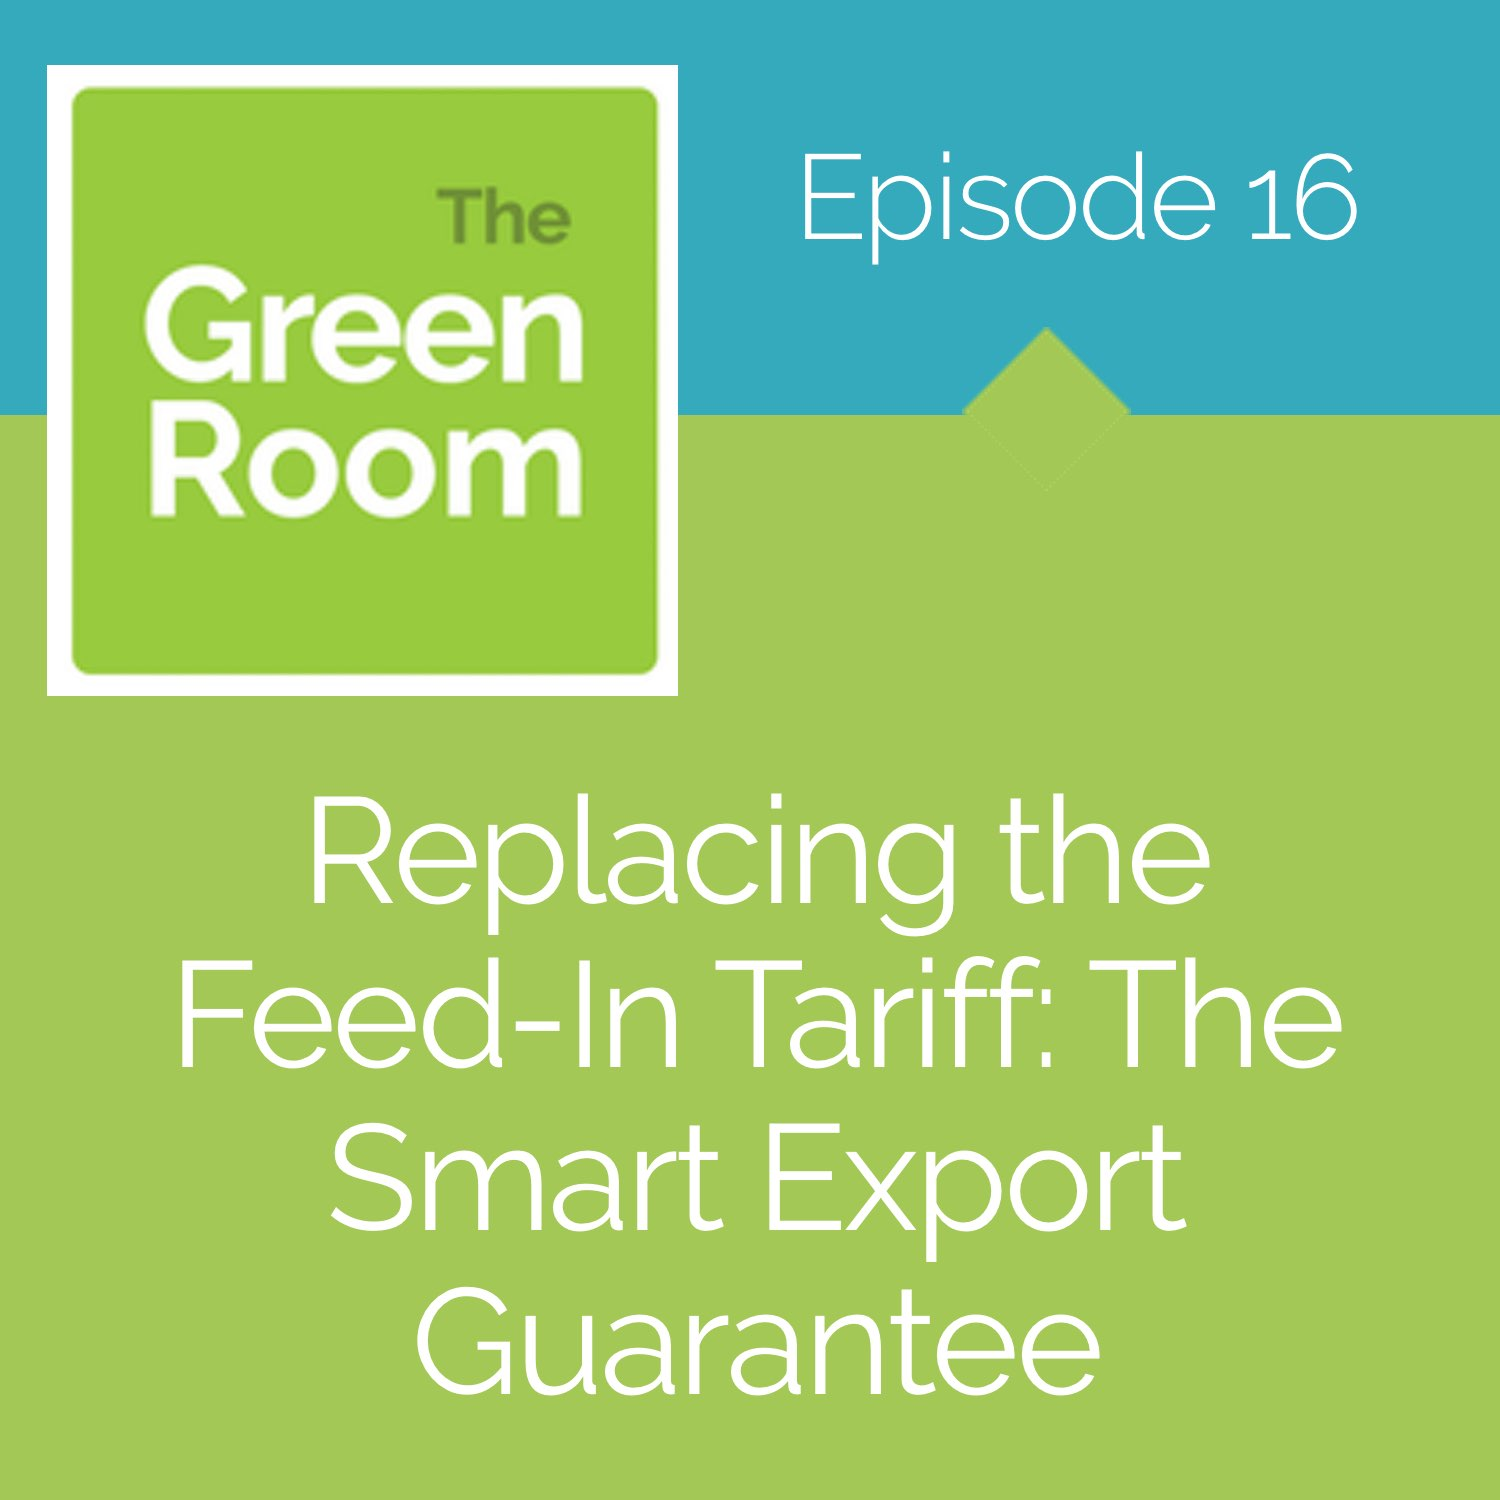 Replacing the Feed-In Tariff: The Smart Export Guarantee